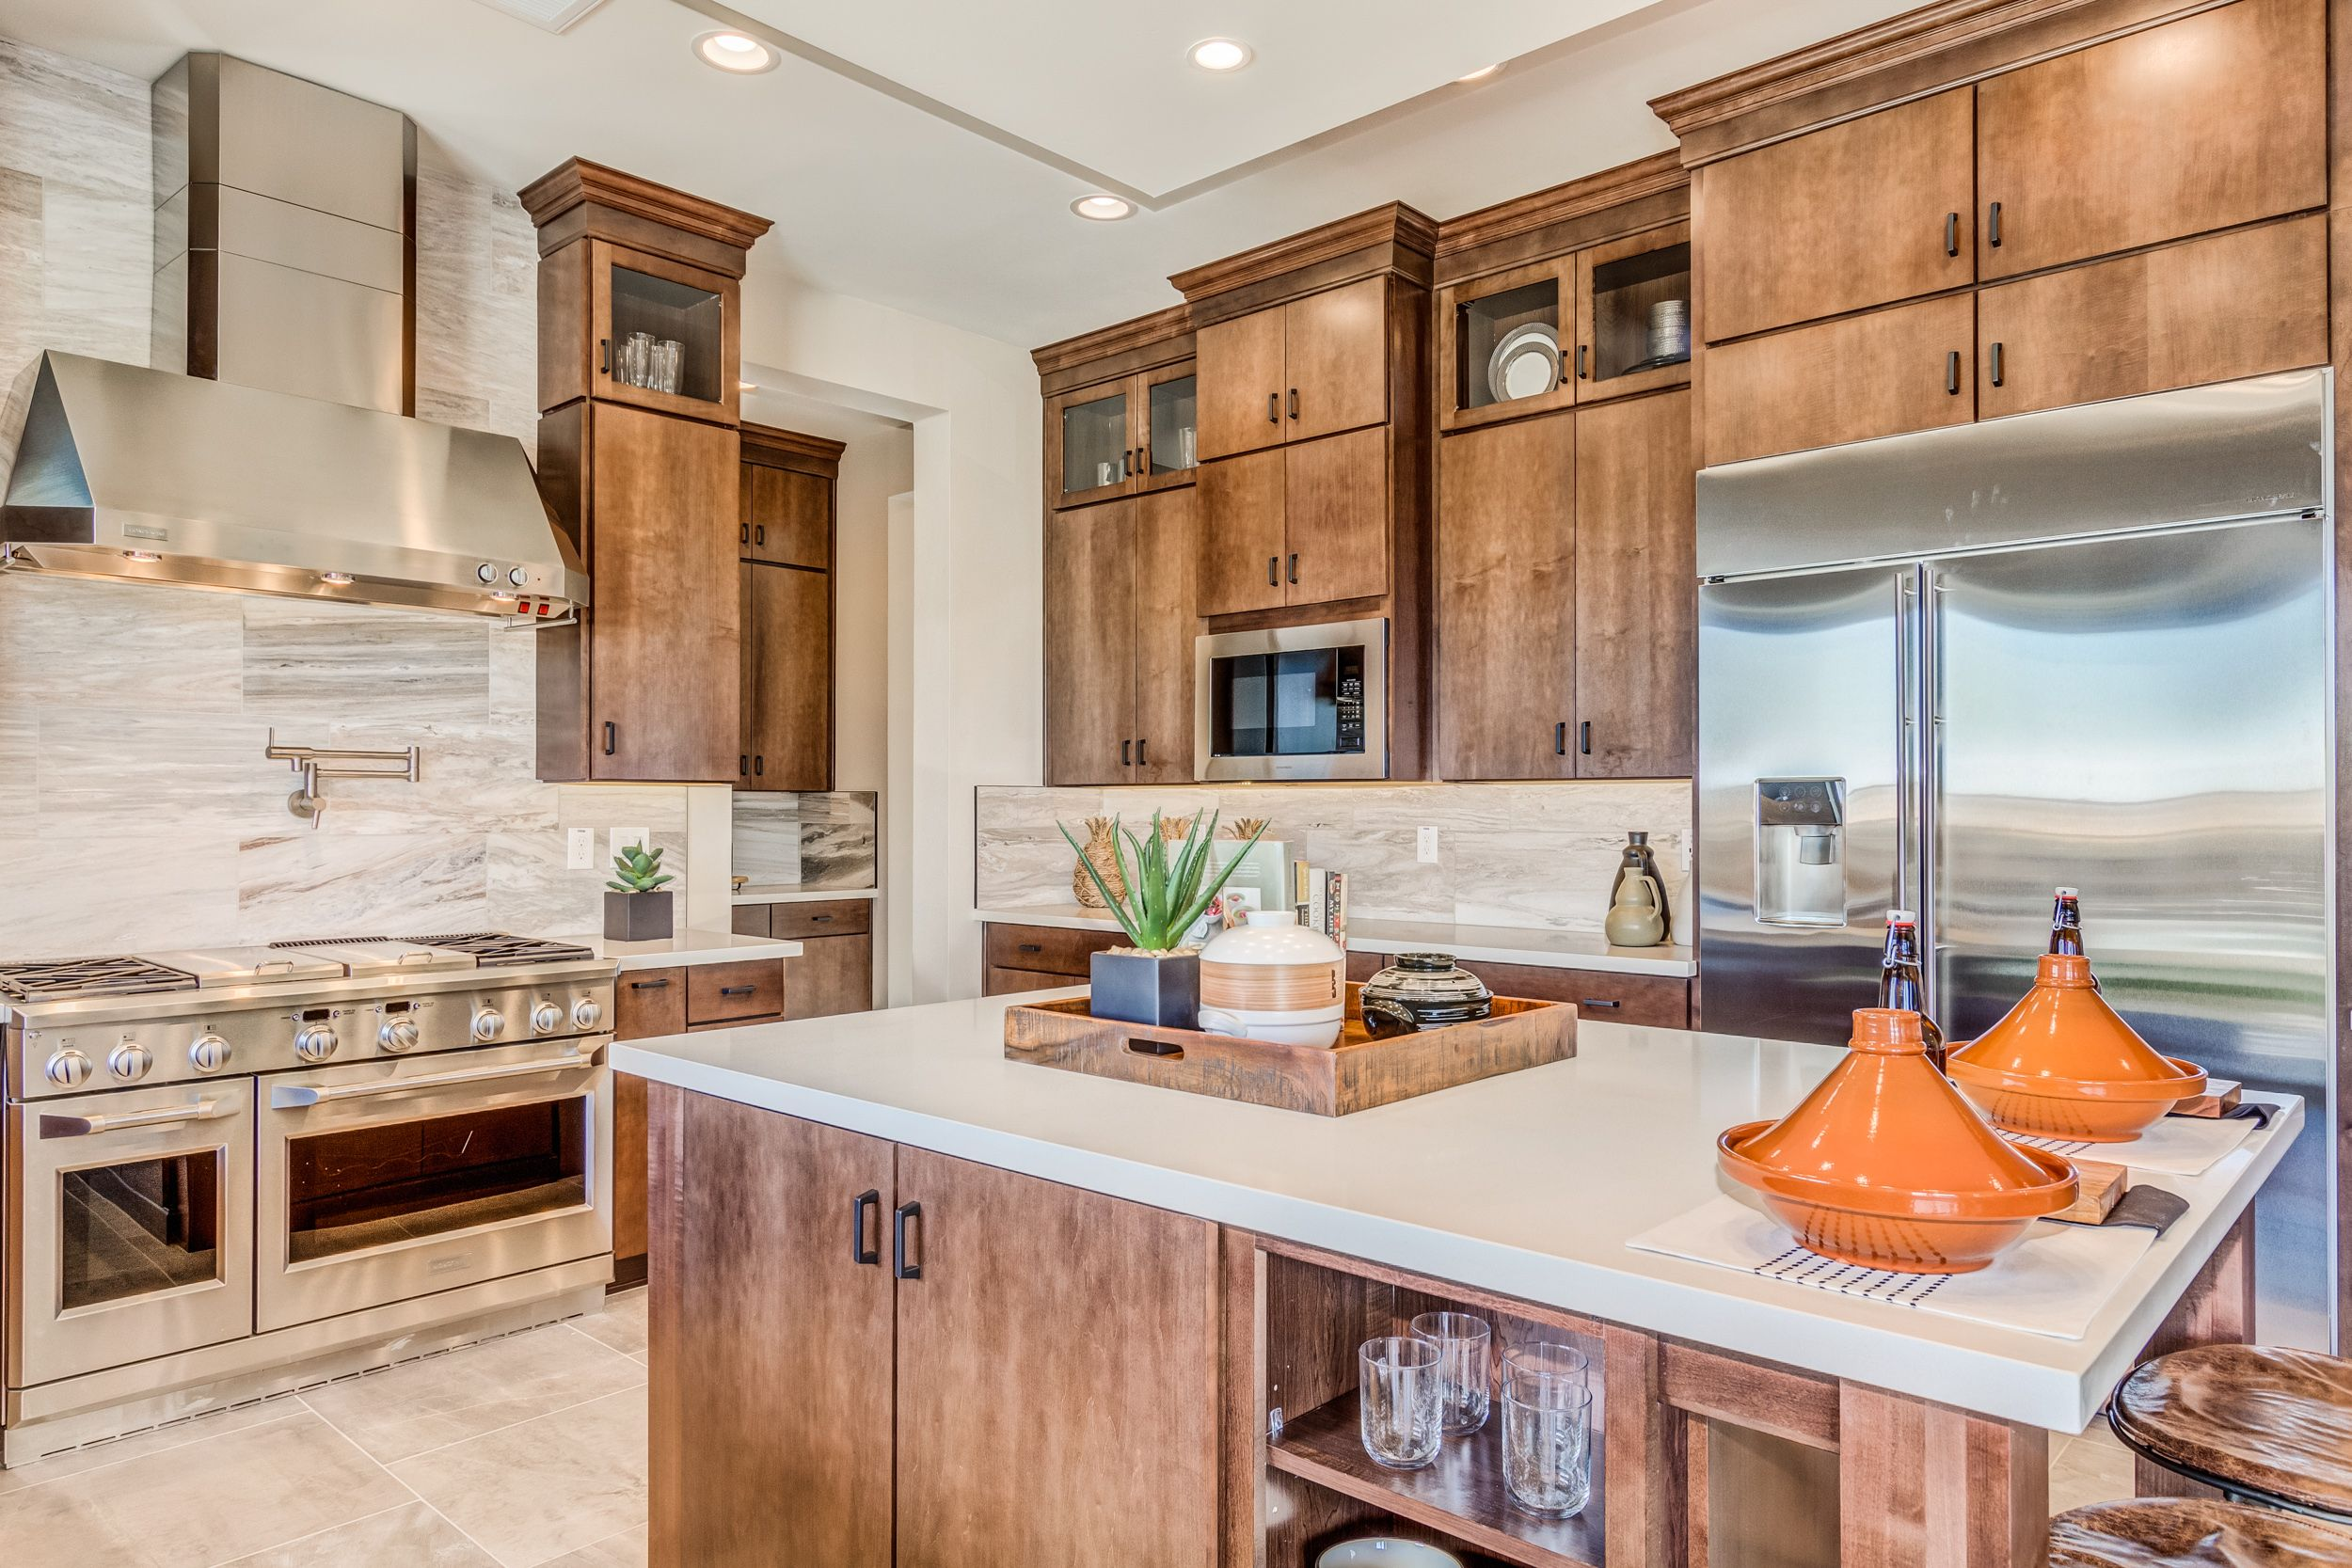 Taylor Morrison Homes At Sky Crossing Cottonwood Floor Plan Realestate Homesforsale Phoe Kitchen Inspirations Natural Wood Kitchen Cabinets Kitchen Decor